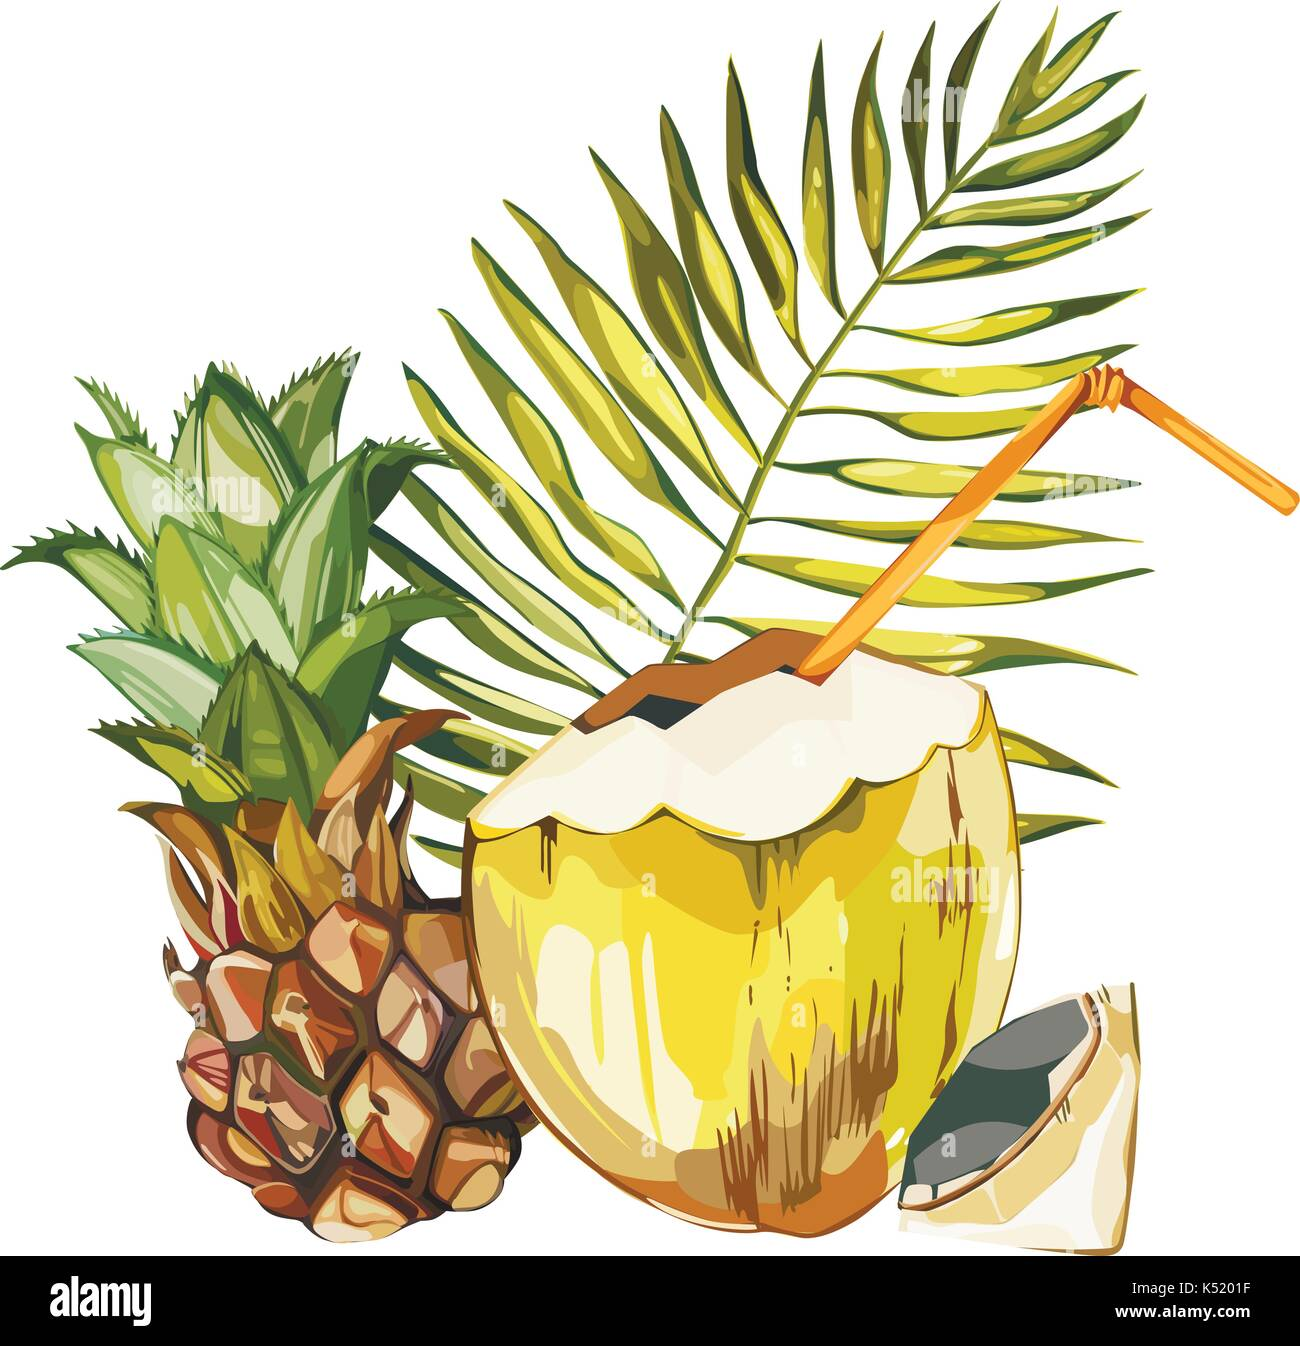 coconut tree flower stock photos amp coconut tree flower